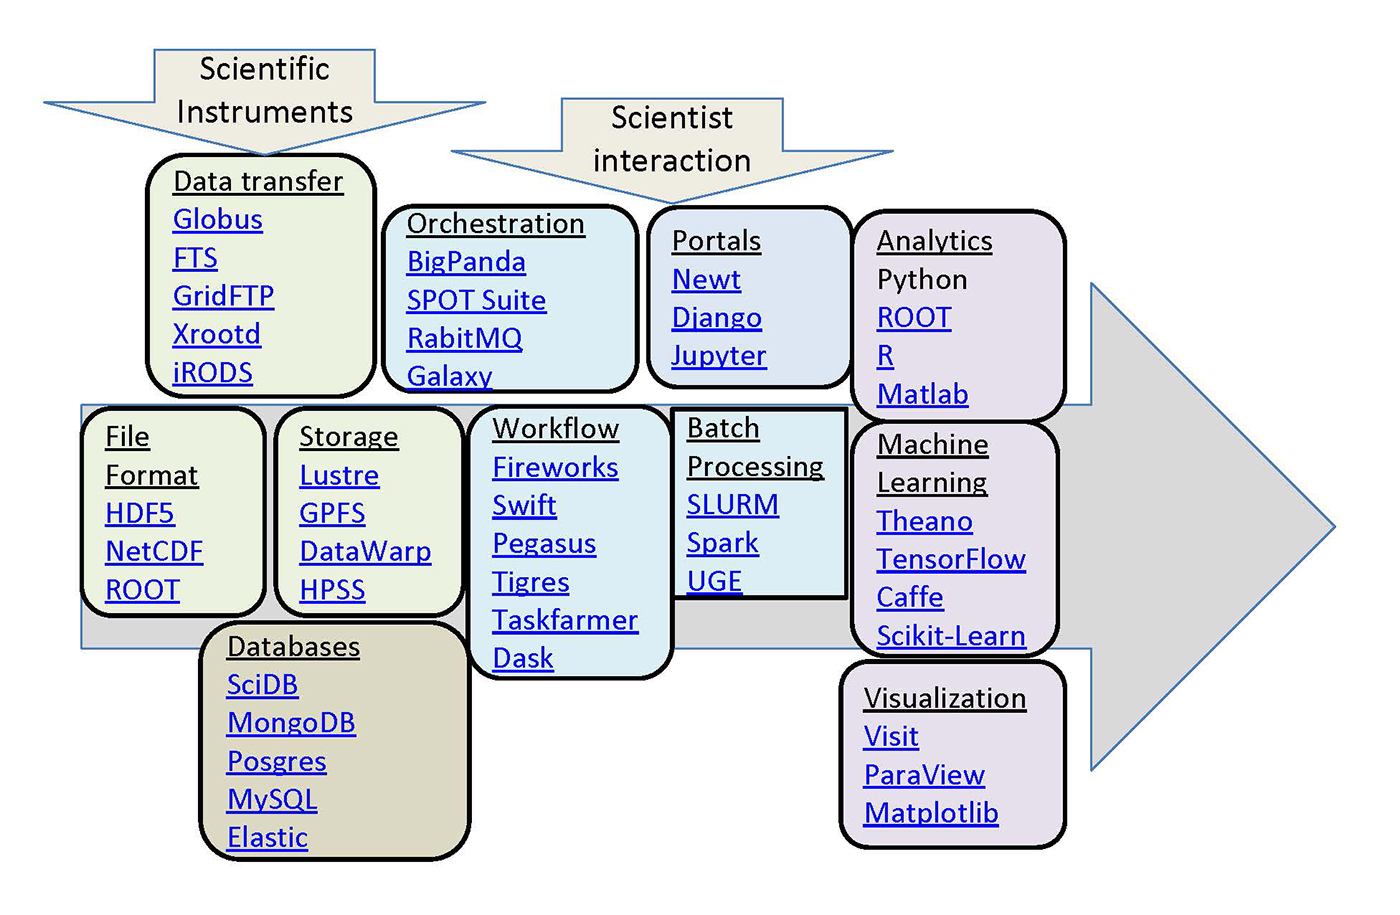 tools in the big data ecosystem for science used at NERSC